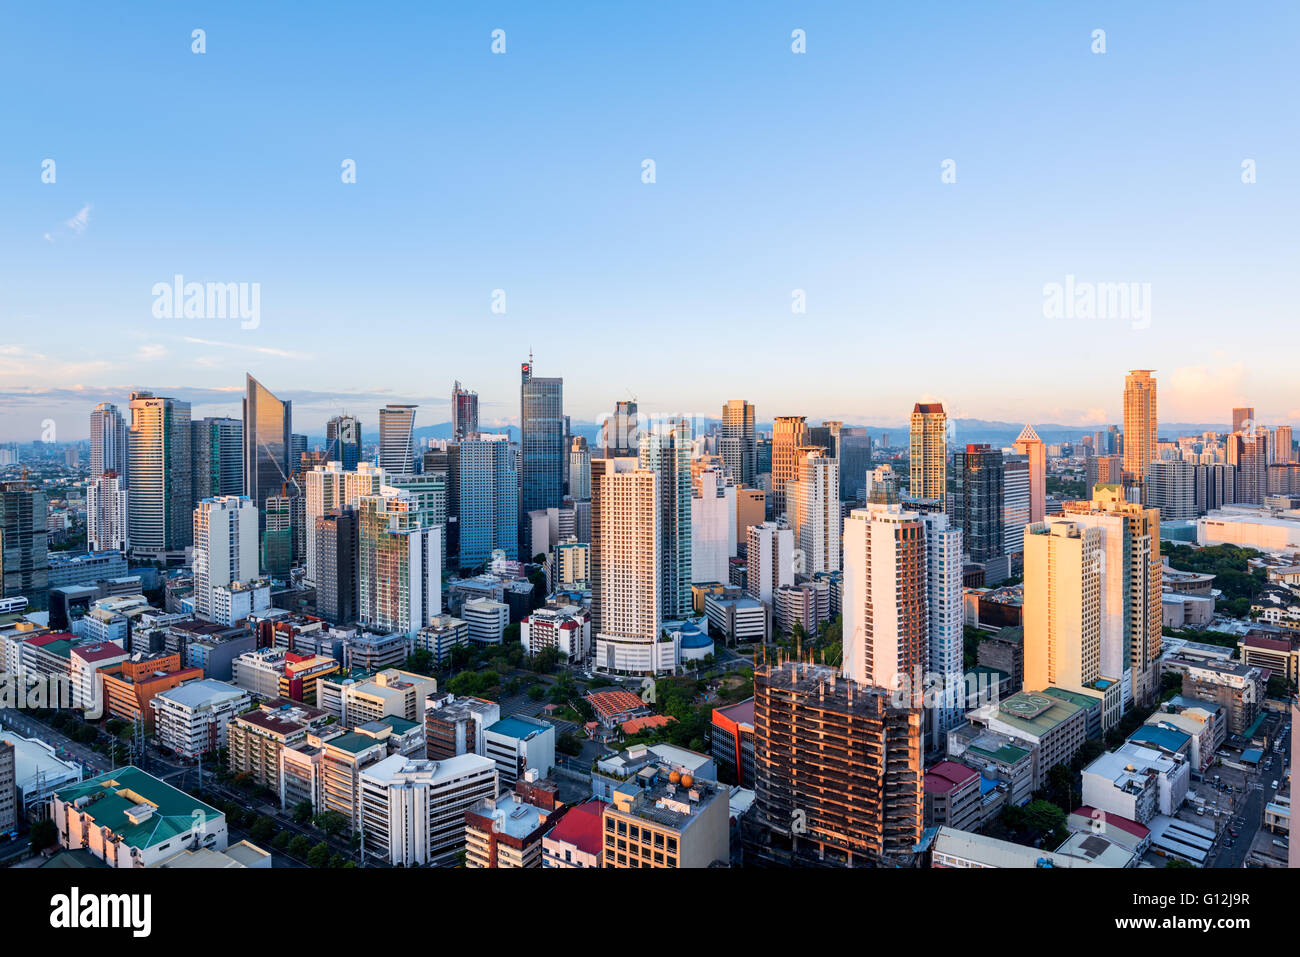 Eleveted, night view of Makati, the business district of Metro Manila. - Stock Image